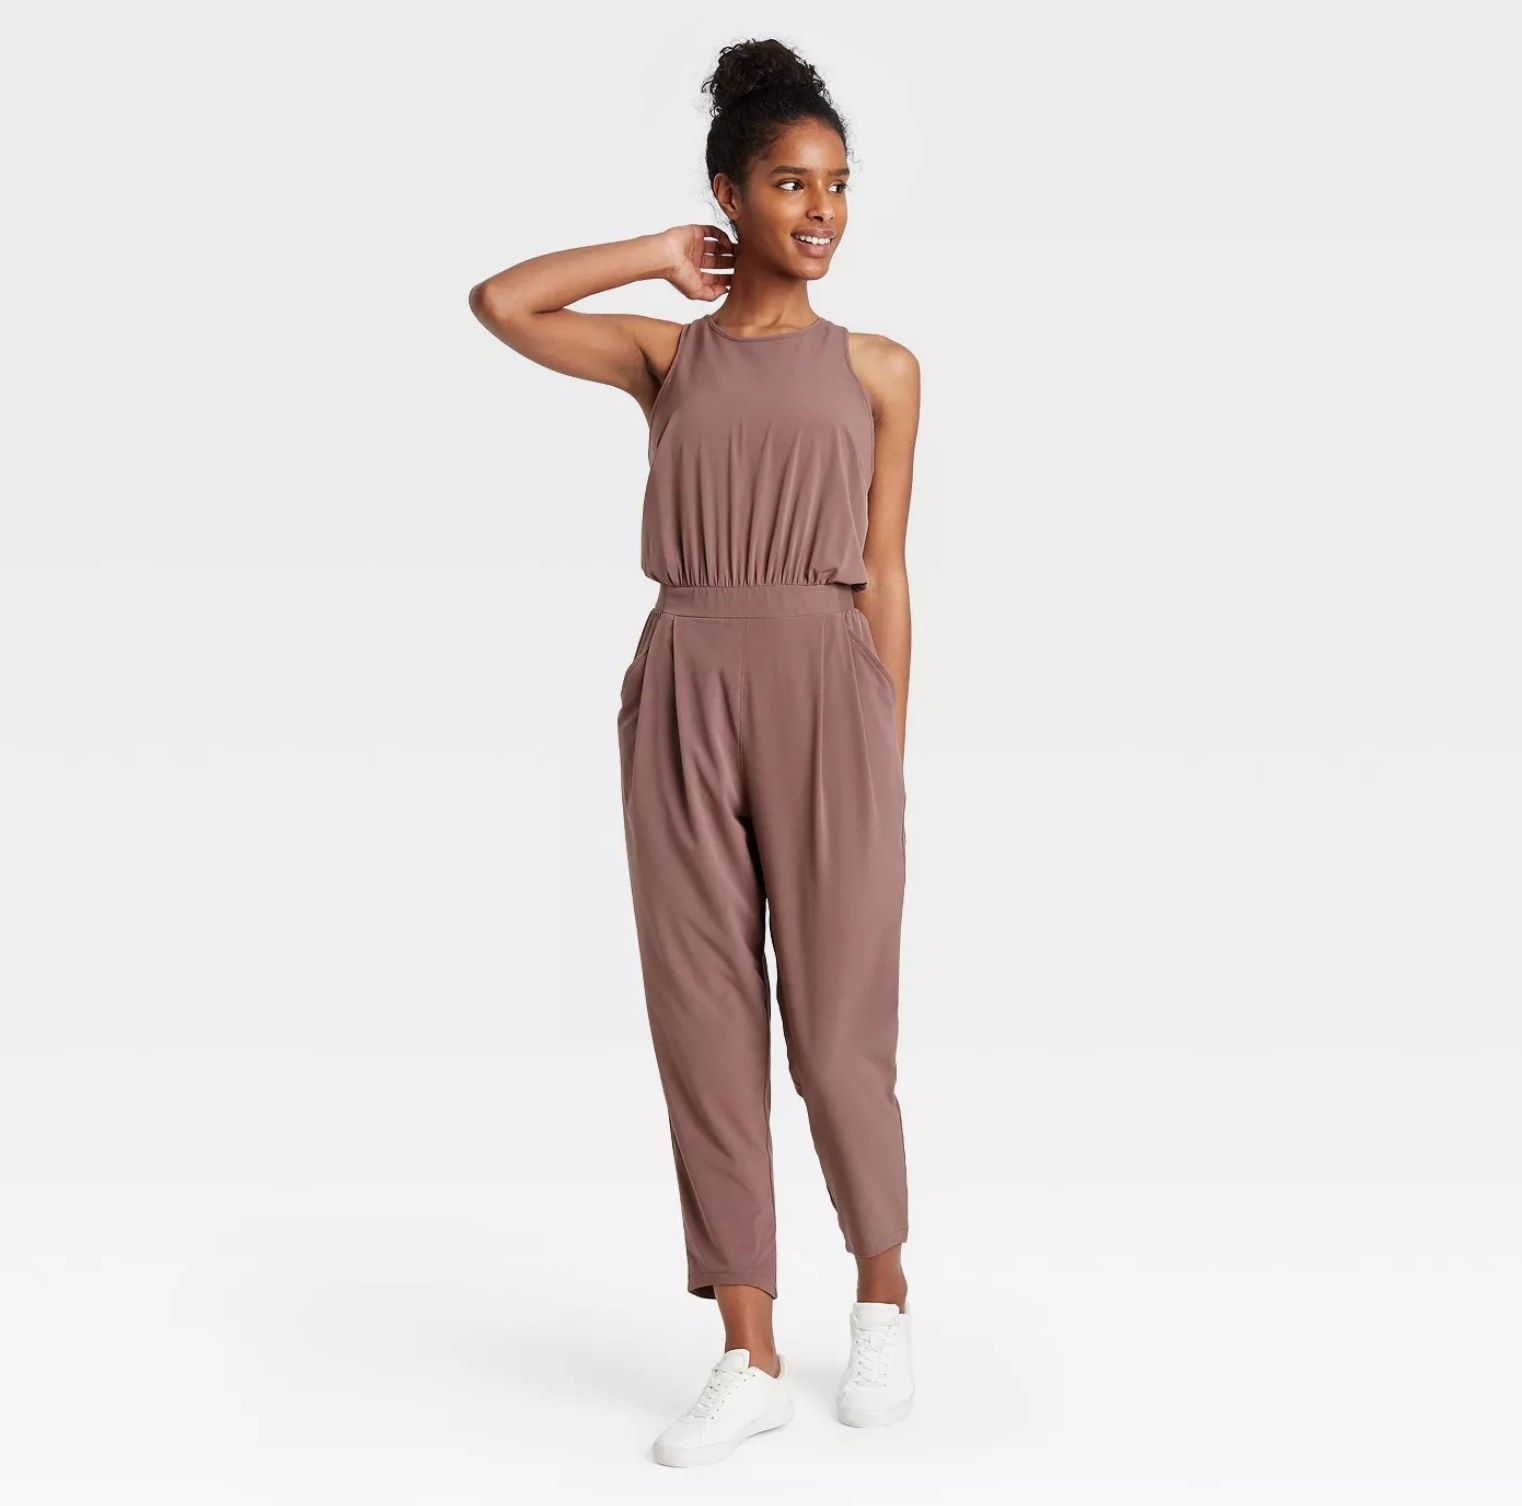 Model wearing the jumpsuit in brown